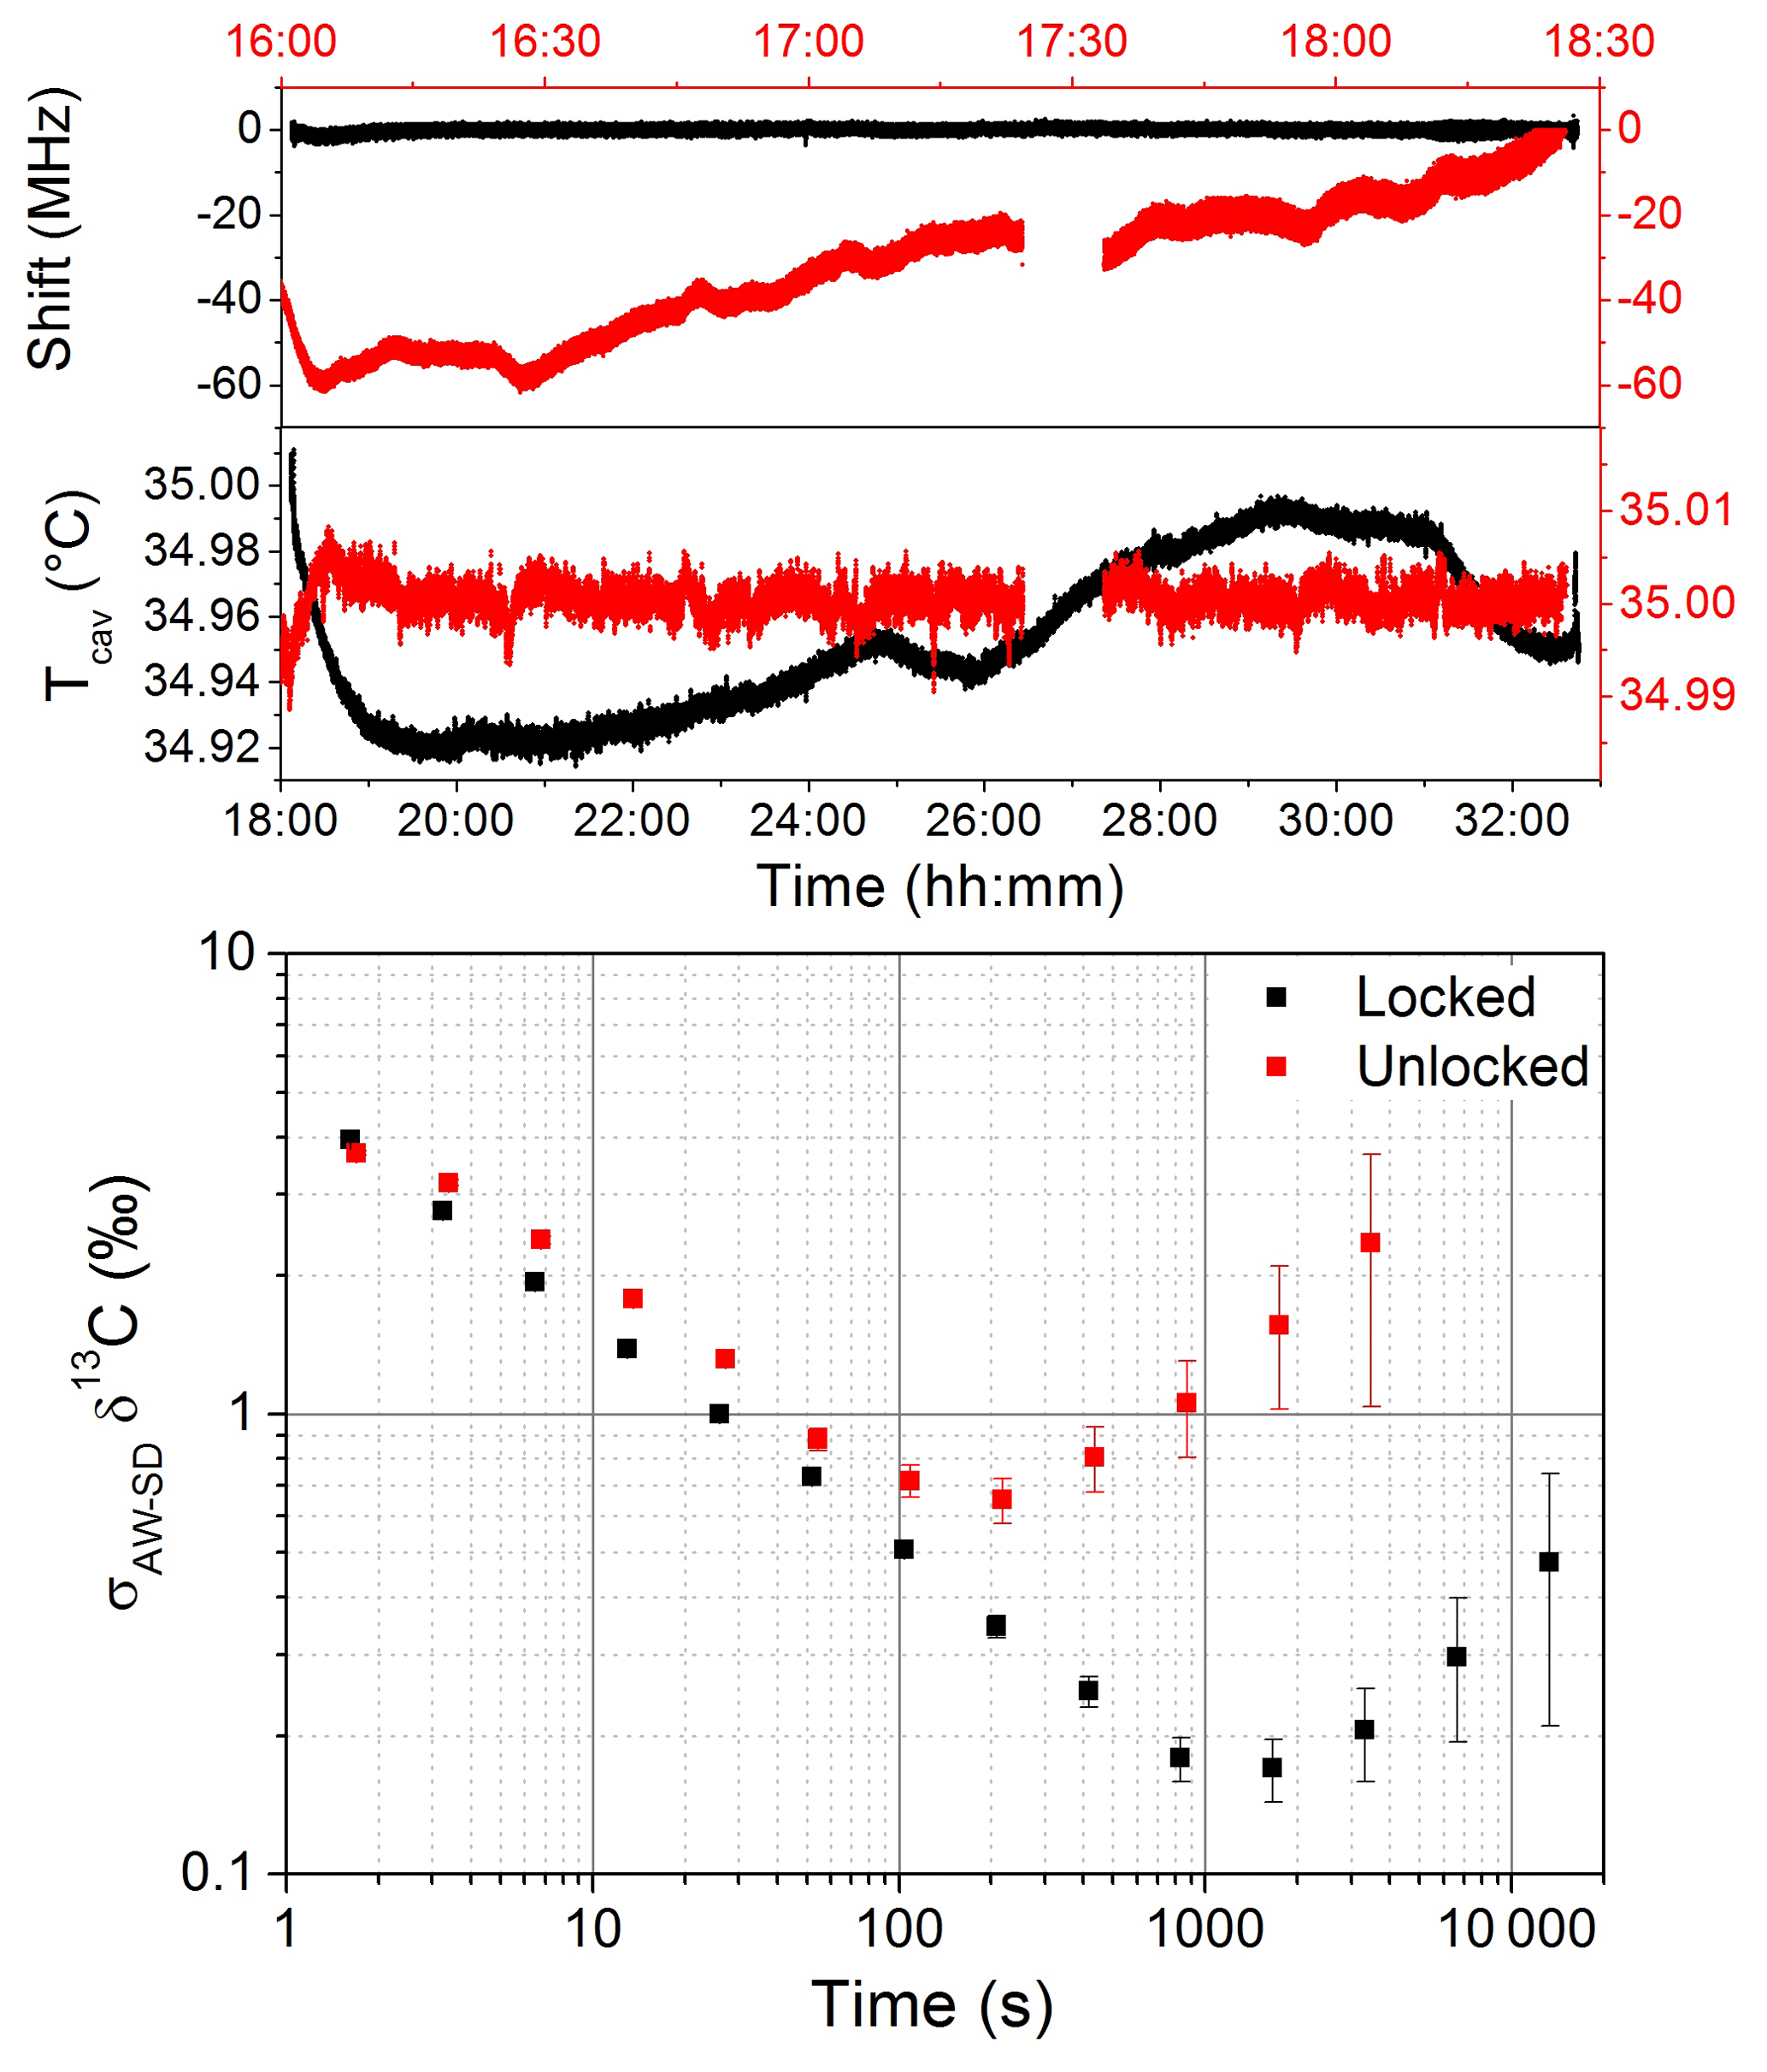 AMT - Simultaneous detection of C2H6, CH4, and δ13C-CH4